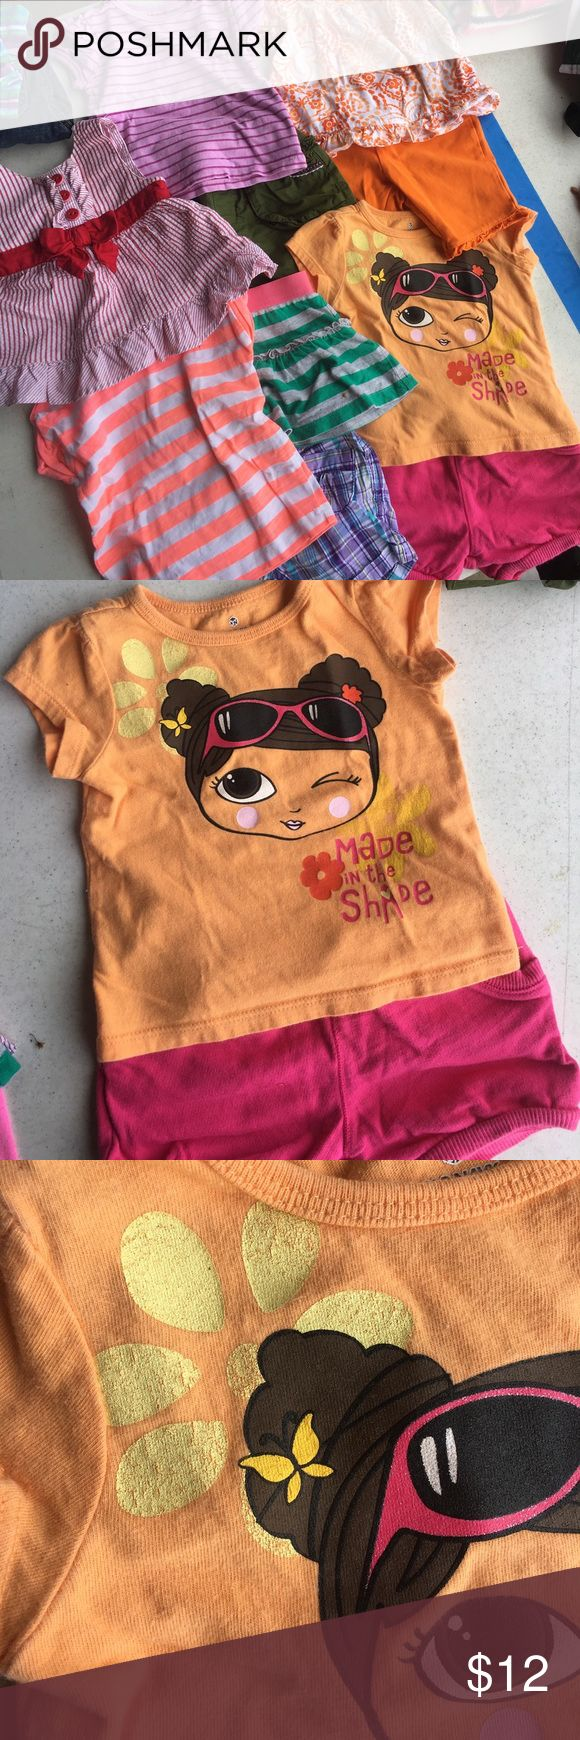 11 piece lot of girls size 6-9 month clothing. 10 piece lot of girls summer clothing. Size 6 months, 6-9 months and 6-12 months. Brands include: Carters, Children's Place, and Gymboree. Good used condition, any noticeable wear shown in photos. Children's Place Matching Sets